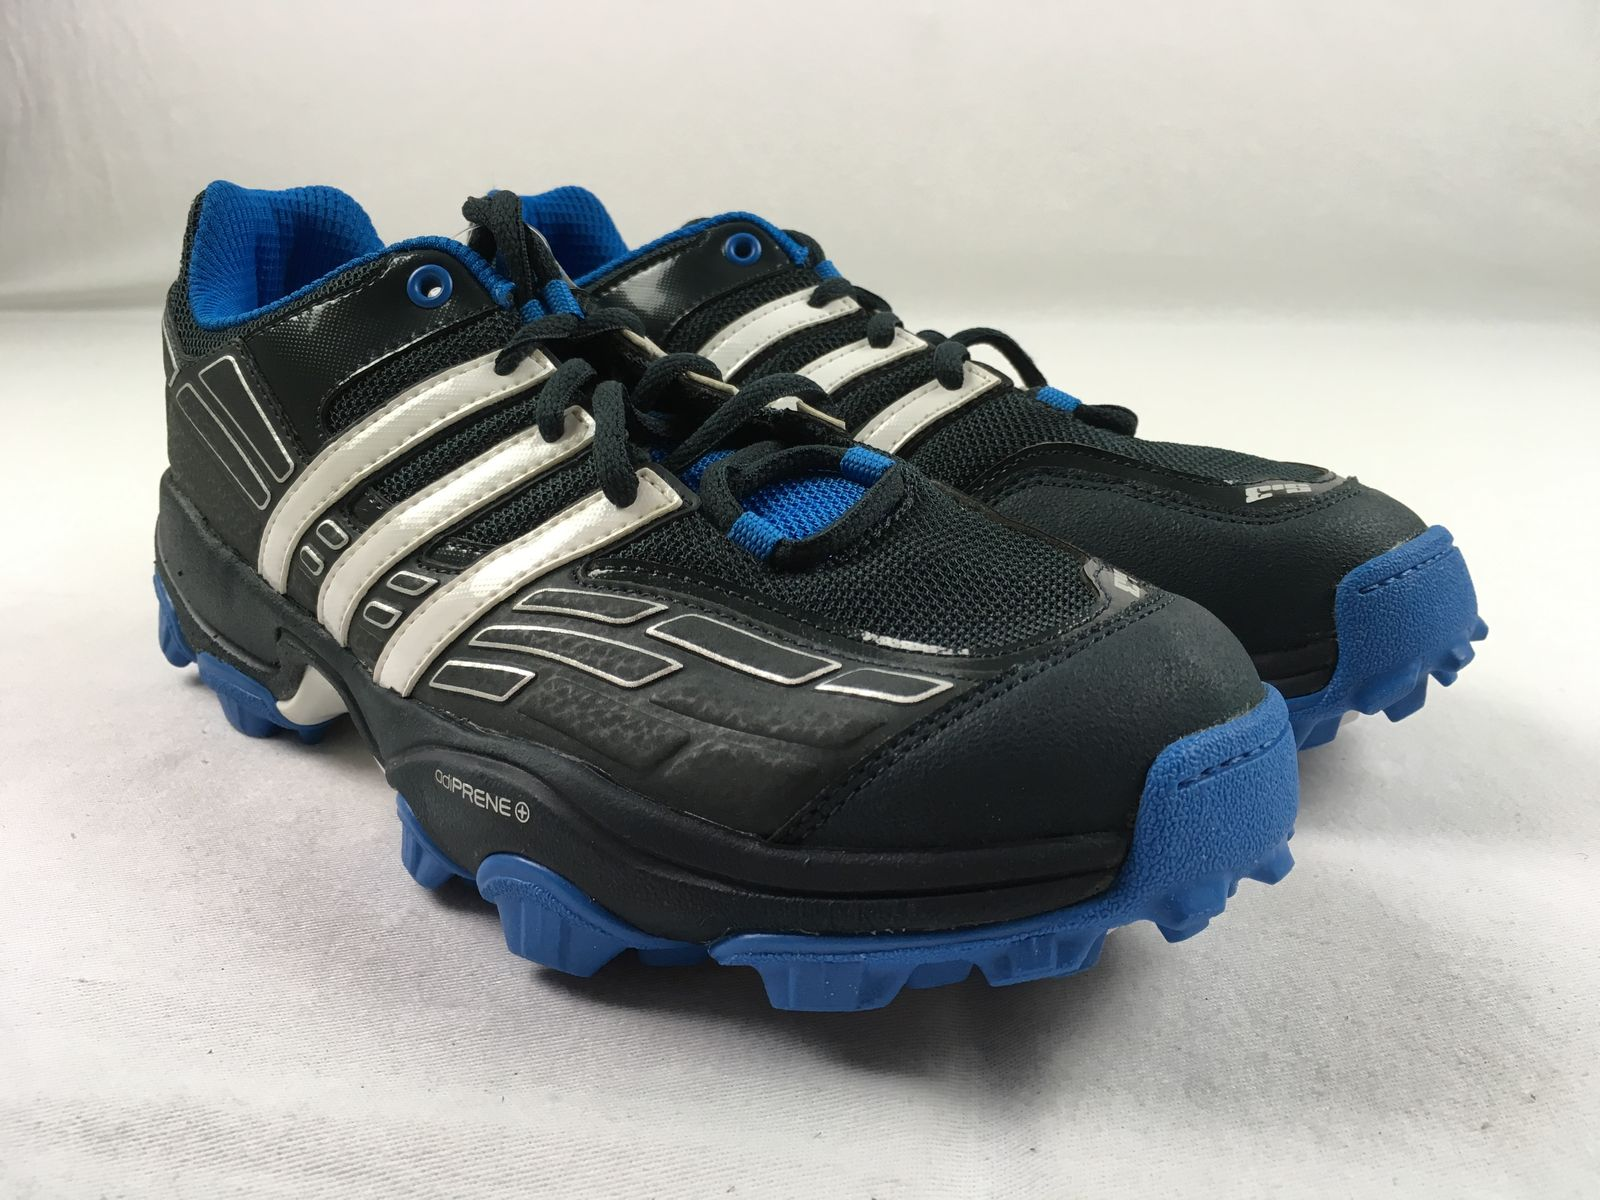 super popular bf8a0 fa6e8 Details about NEW adidas adistar Hockey S.3 - BlackBlue Cleats (Mens  Multiple Sizes). Listed for charity